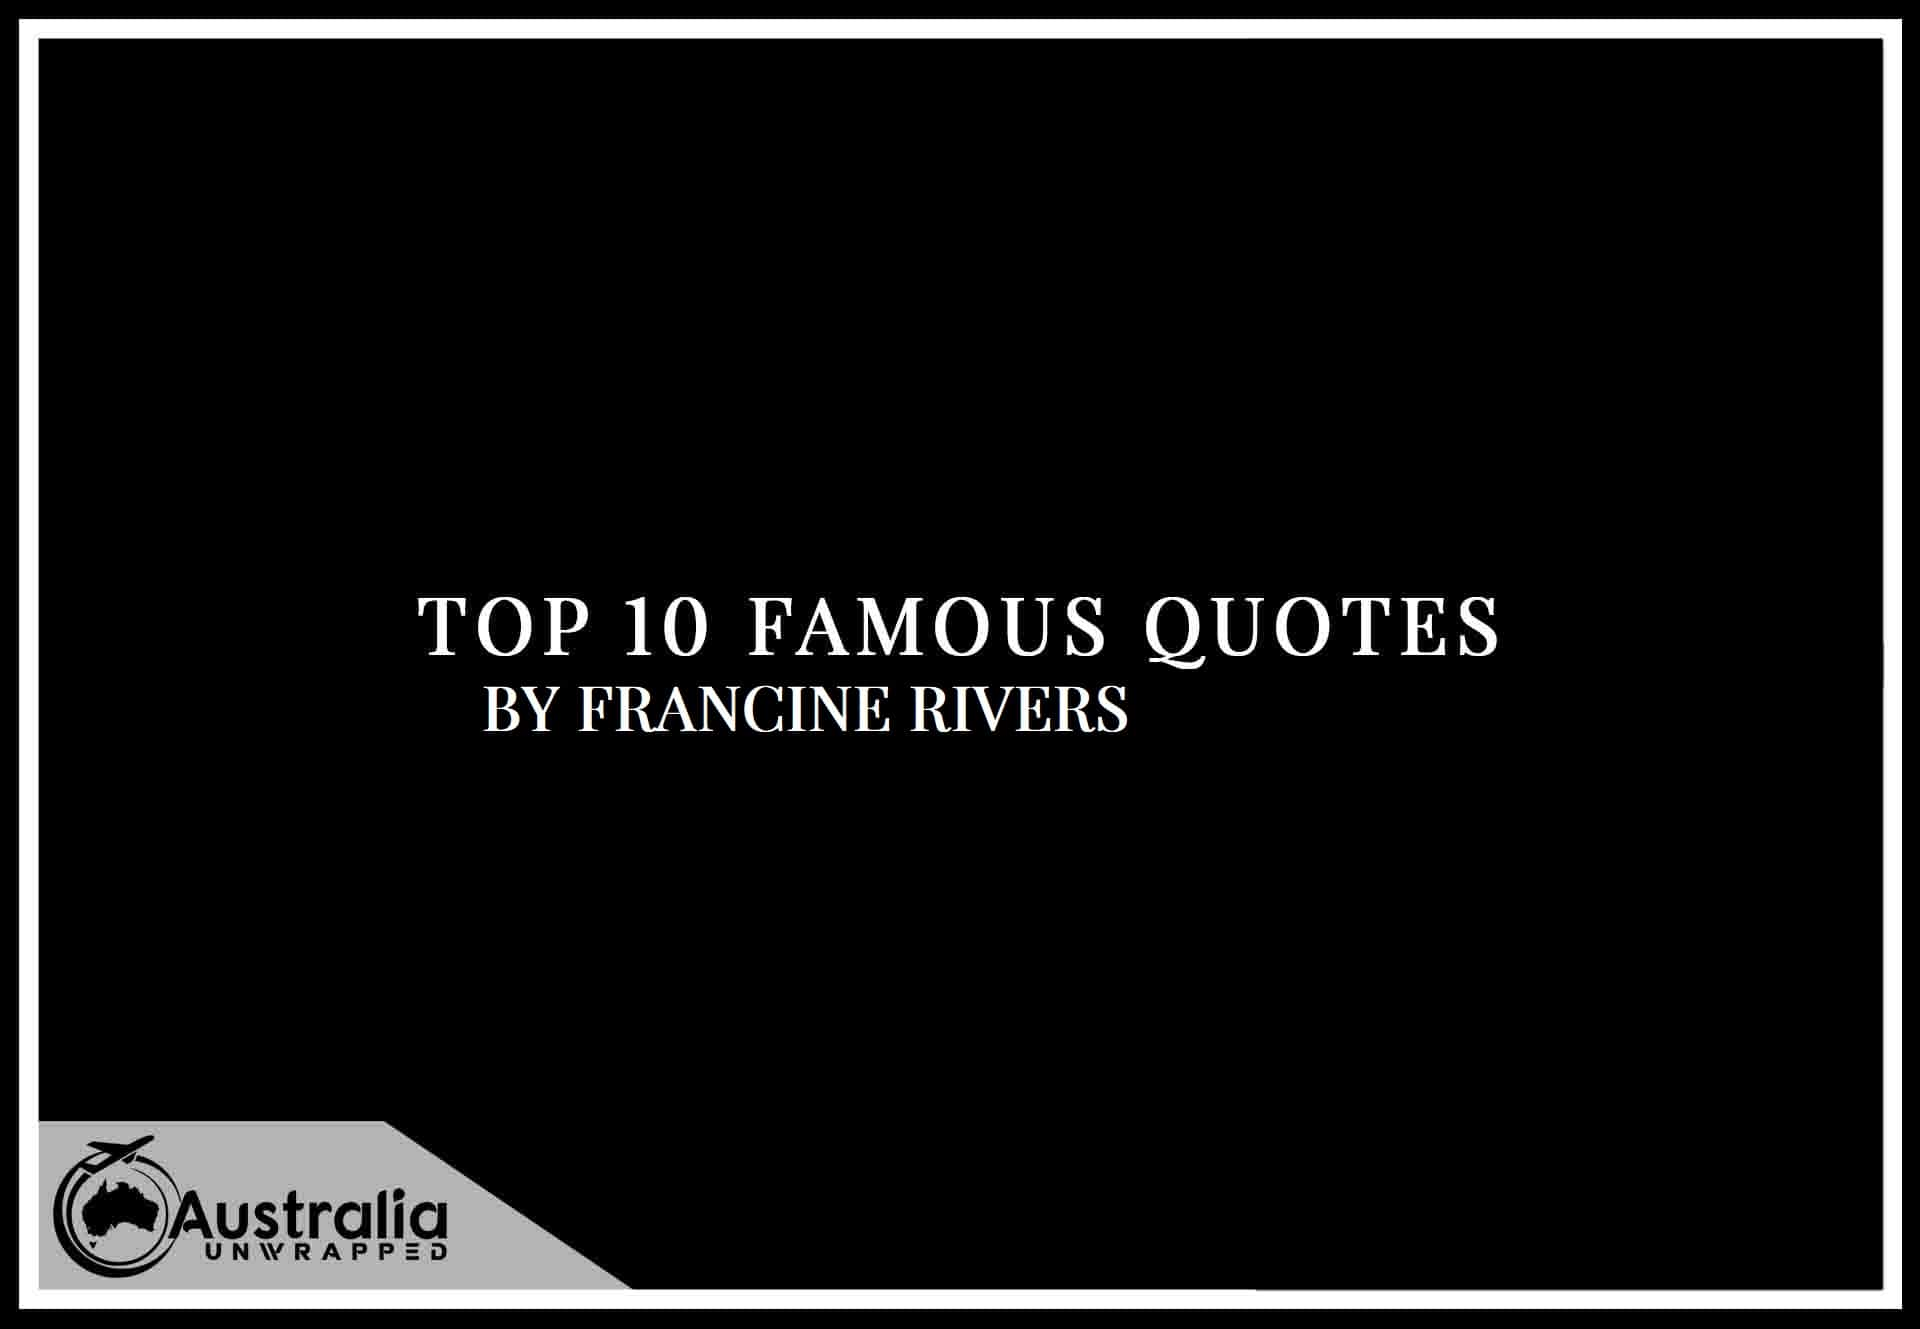 Top 10 Famous Quotes by Author Francine Rivers